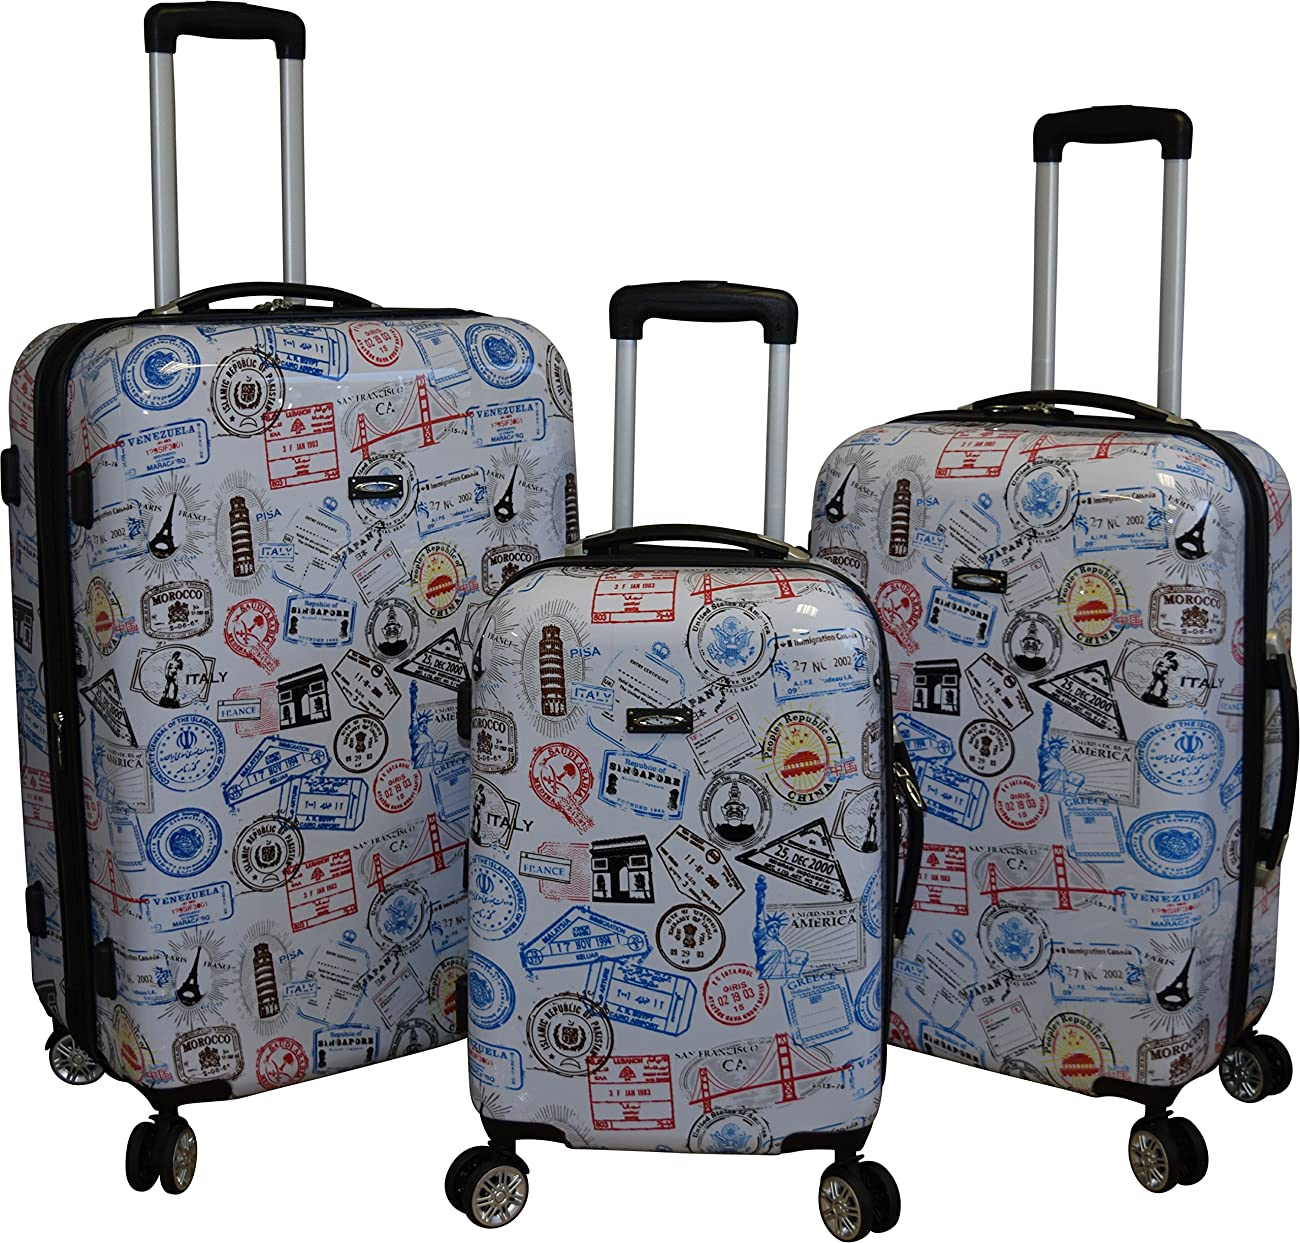 Kemyer 788 Vintage World Series Lightweight 3-PC Expandable Hardside Spinner Luggage Set 0